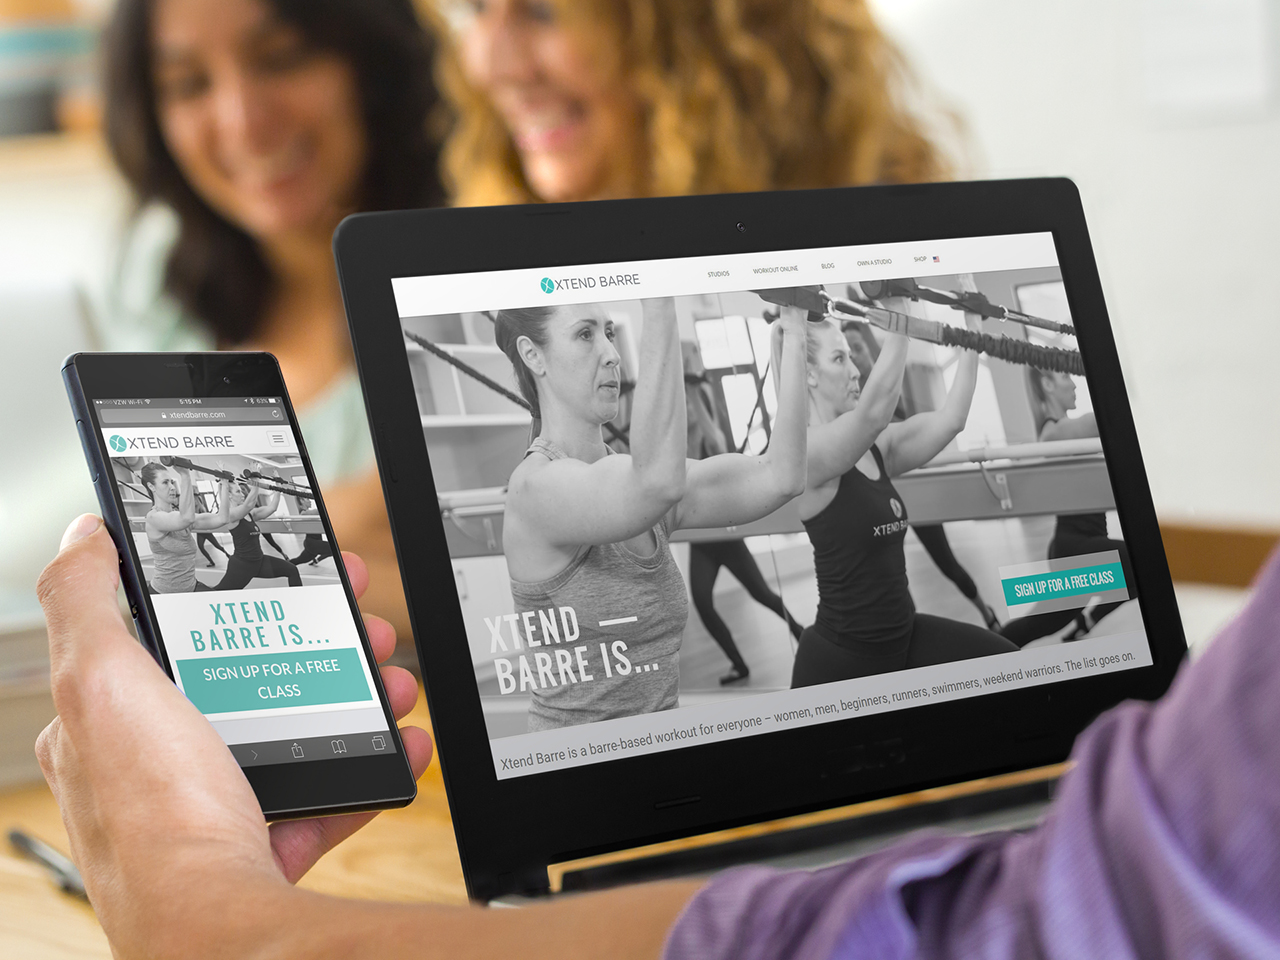 Find the Best Barre Fitness Classes on the New Xtend Barre Website